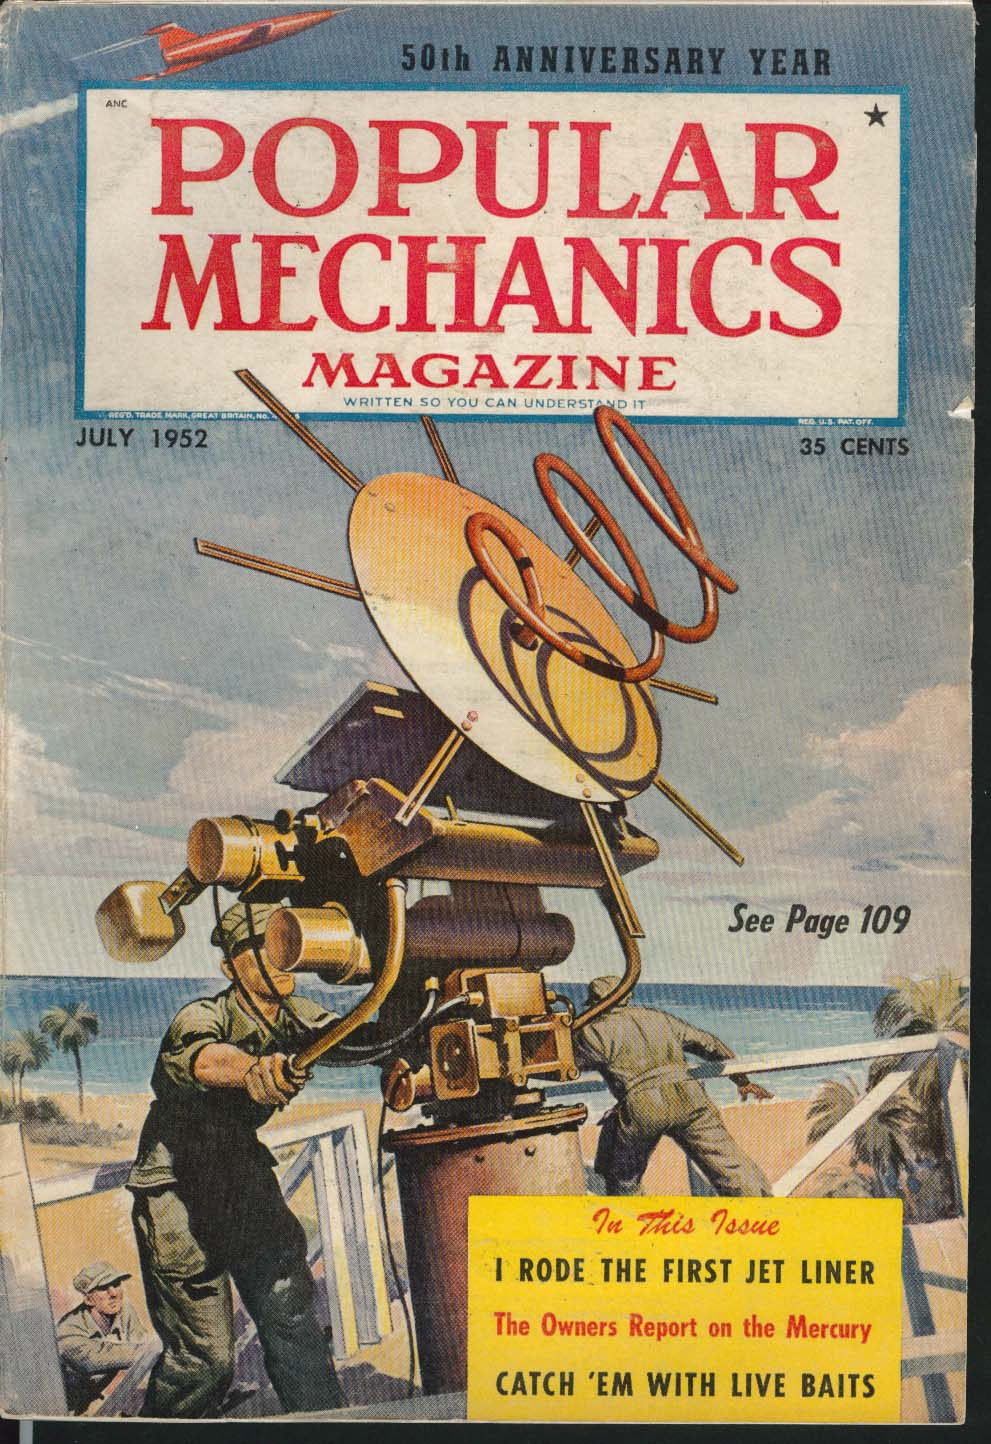 Image for POPULAR MECHANICS Television Cameras Commercial Photography Mercury ++ 7 1952